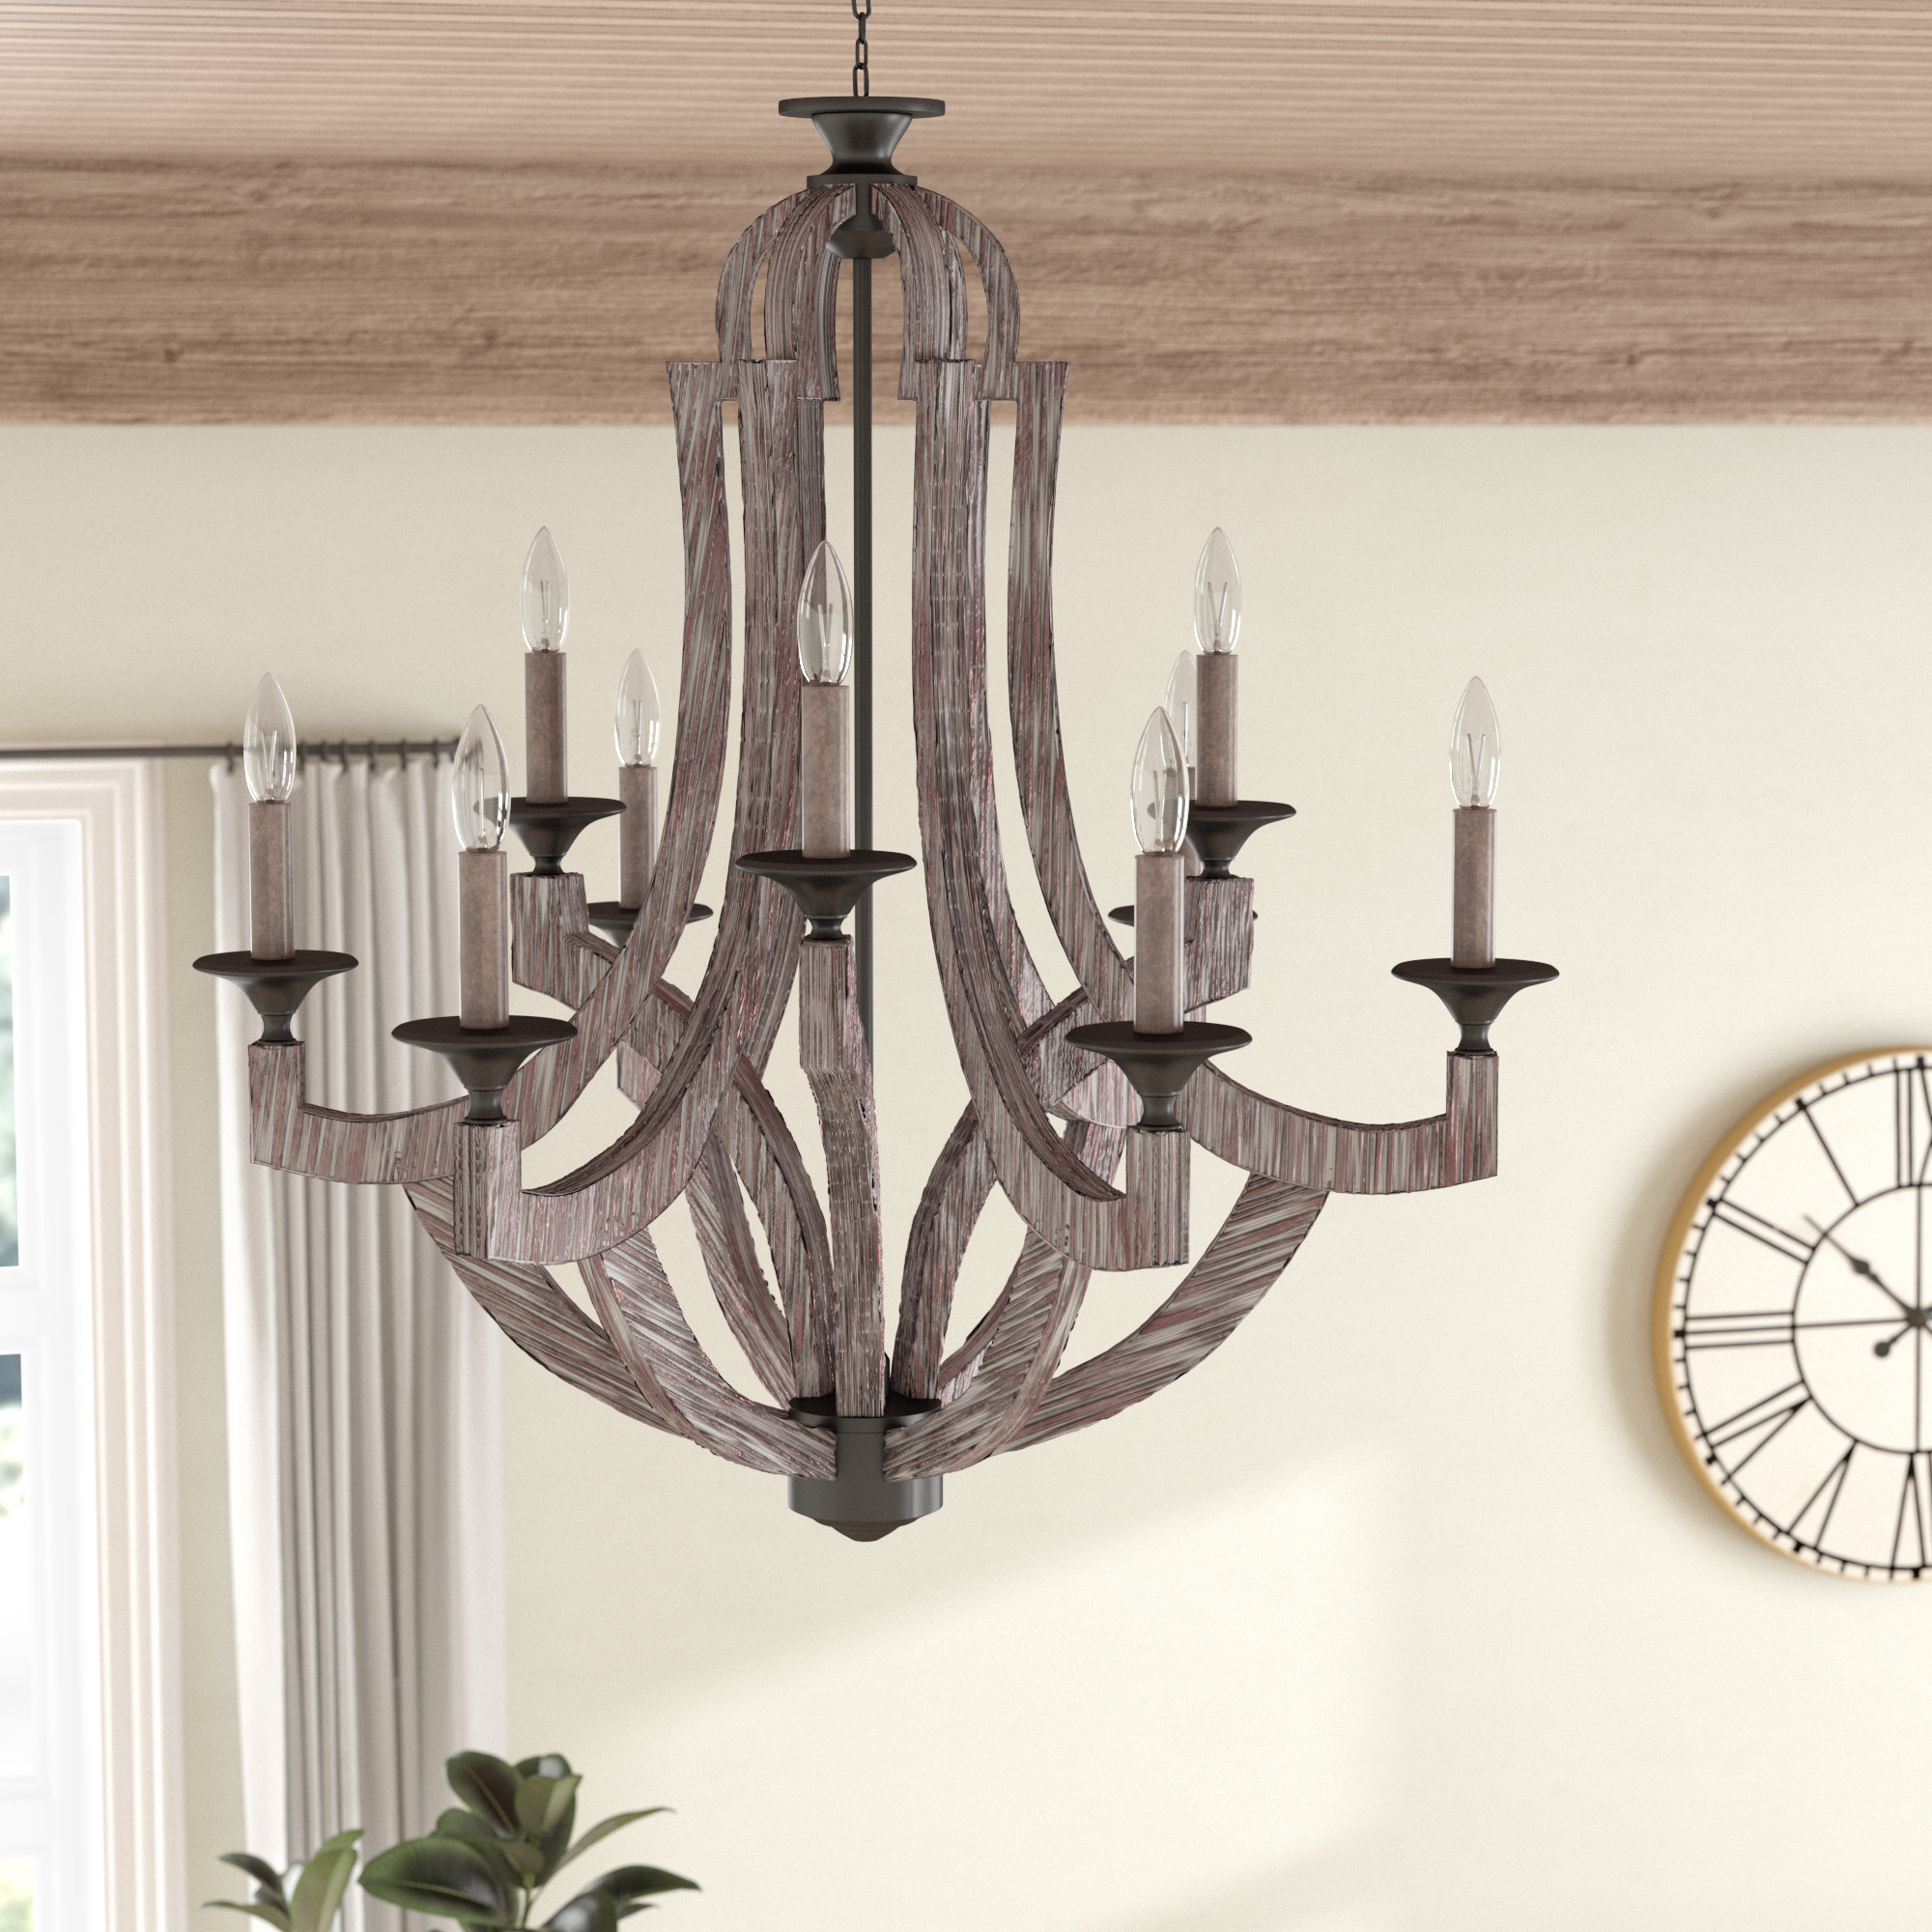 Wayfair Pertaining To Best And Newest Camilla 9 Light Candle Style Chandeliers (View 21 of 25)